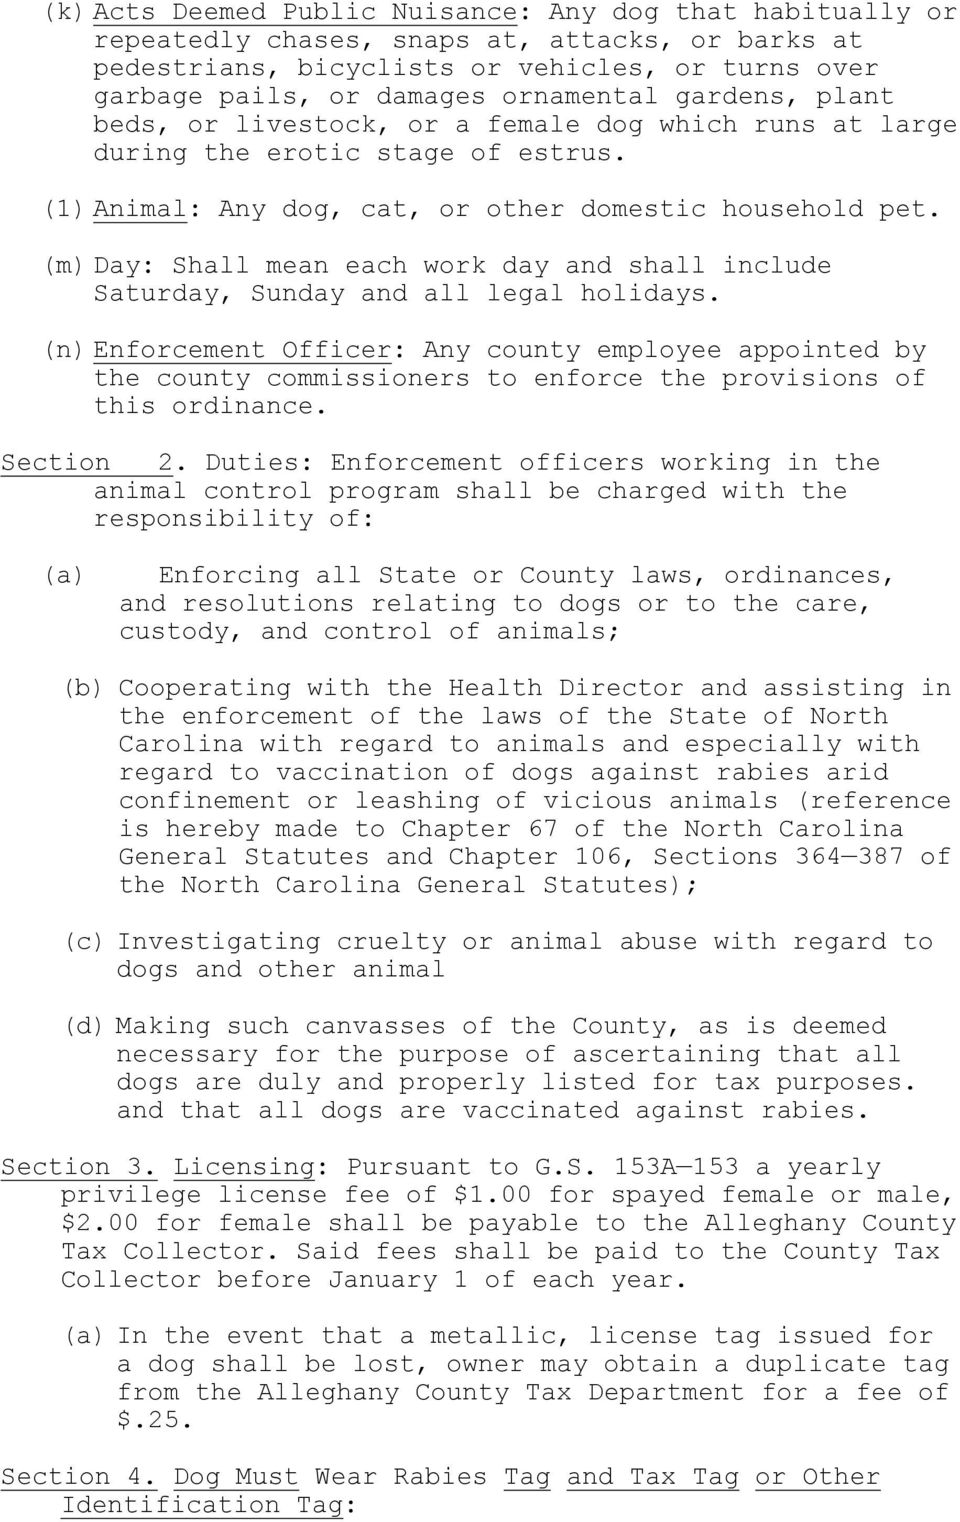 ALLECHANY COUNTY ANIMAL CONTROL ORDINANCE  Section 1